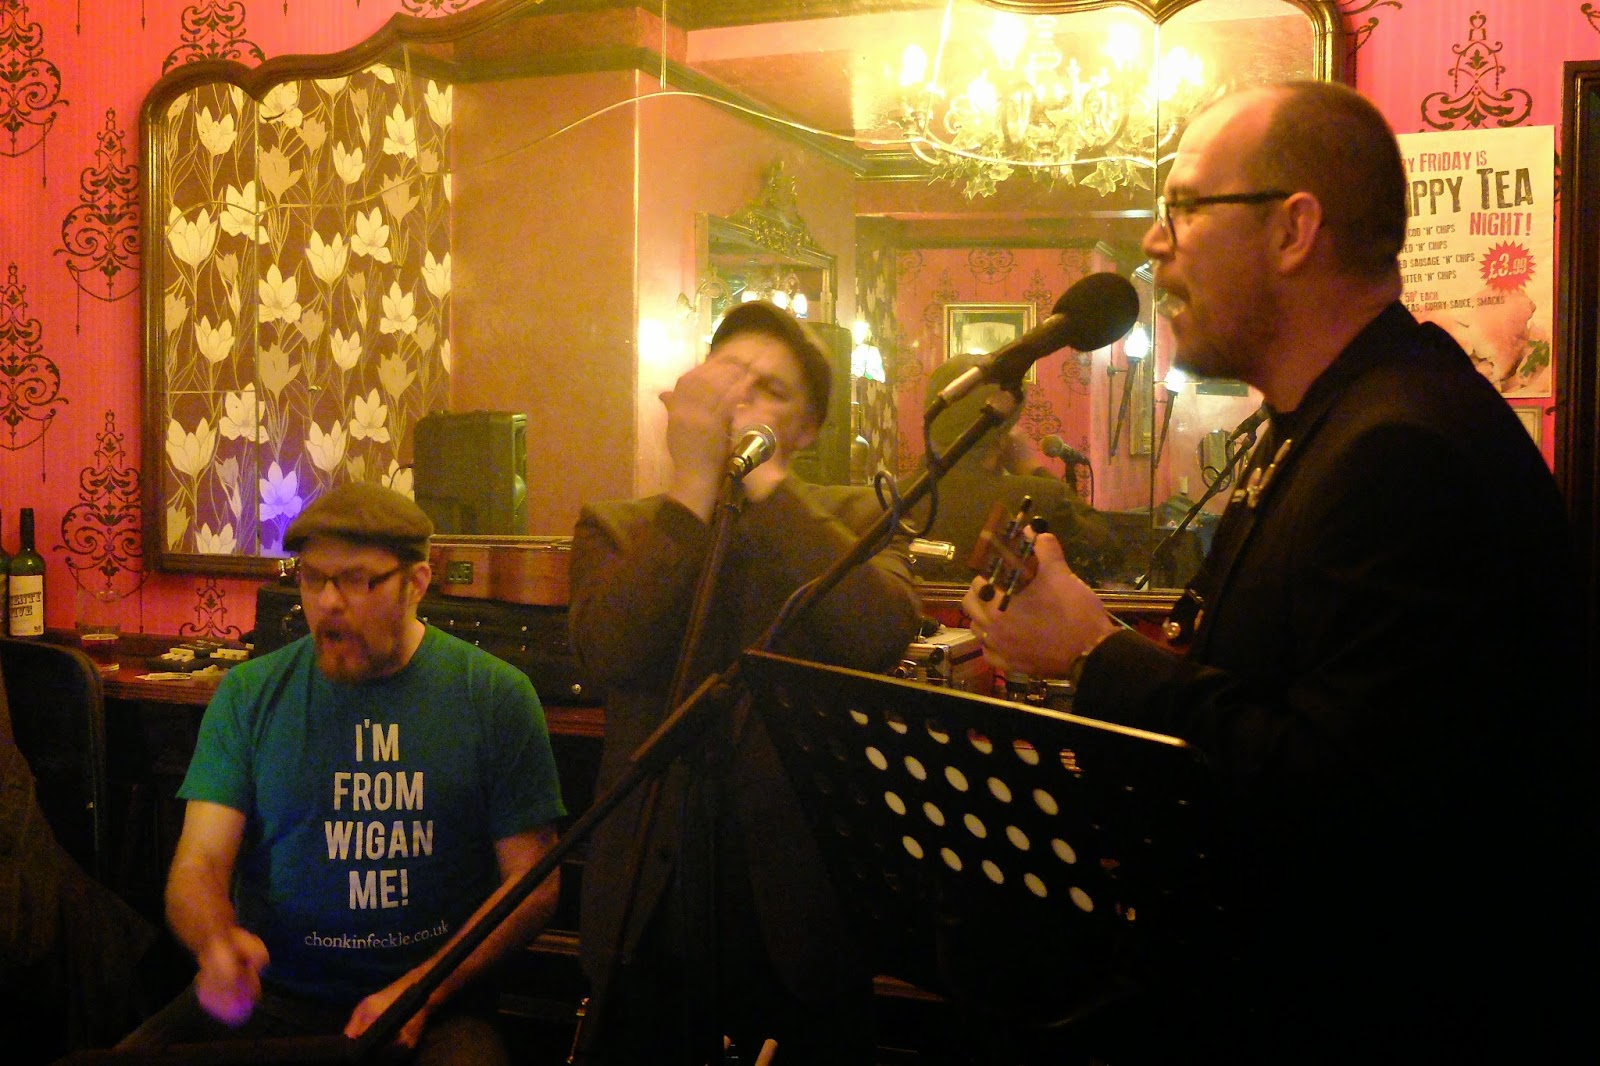 Chonkin Tunes Ukulele Open Mic Chonkinfeckle with Baz Maz